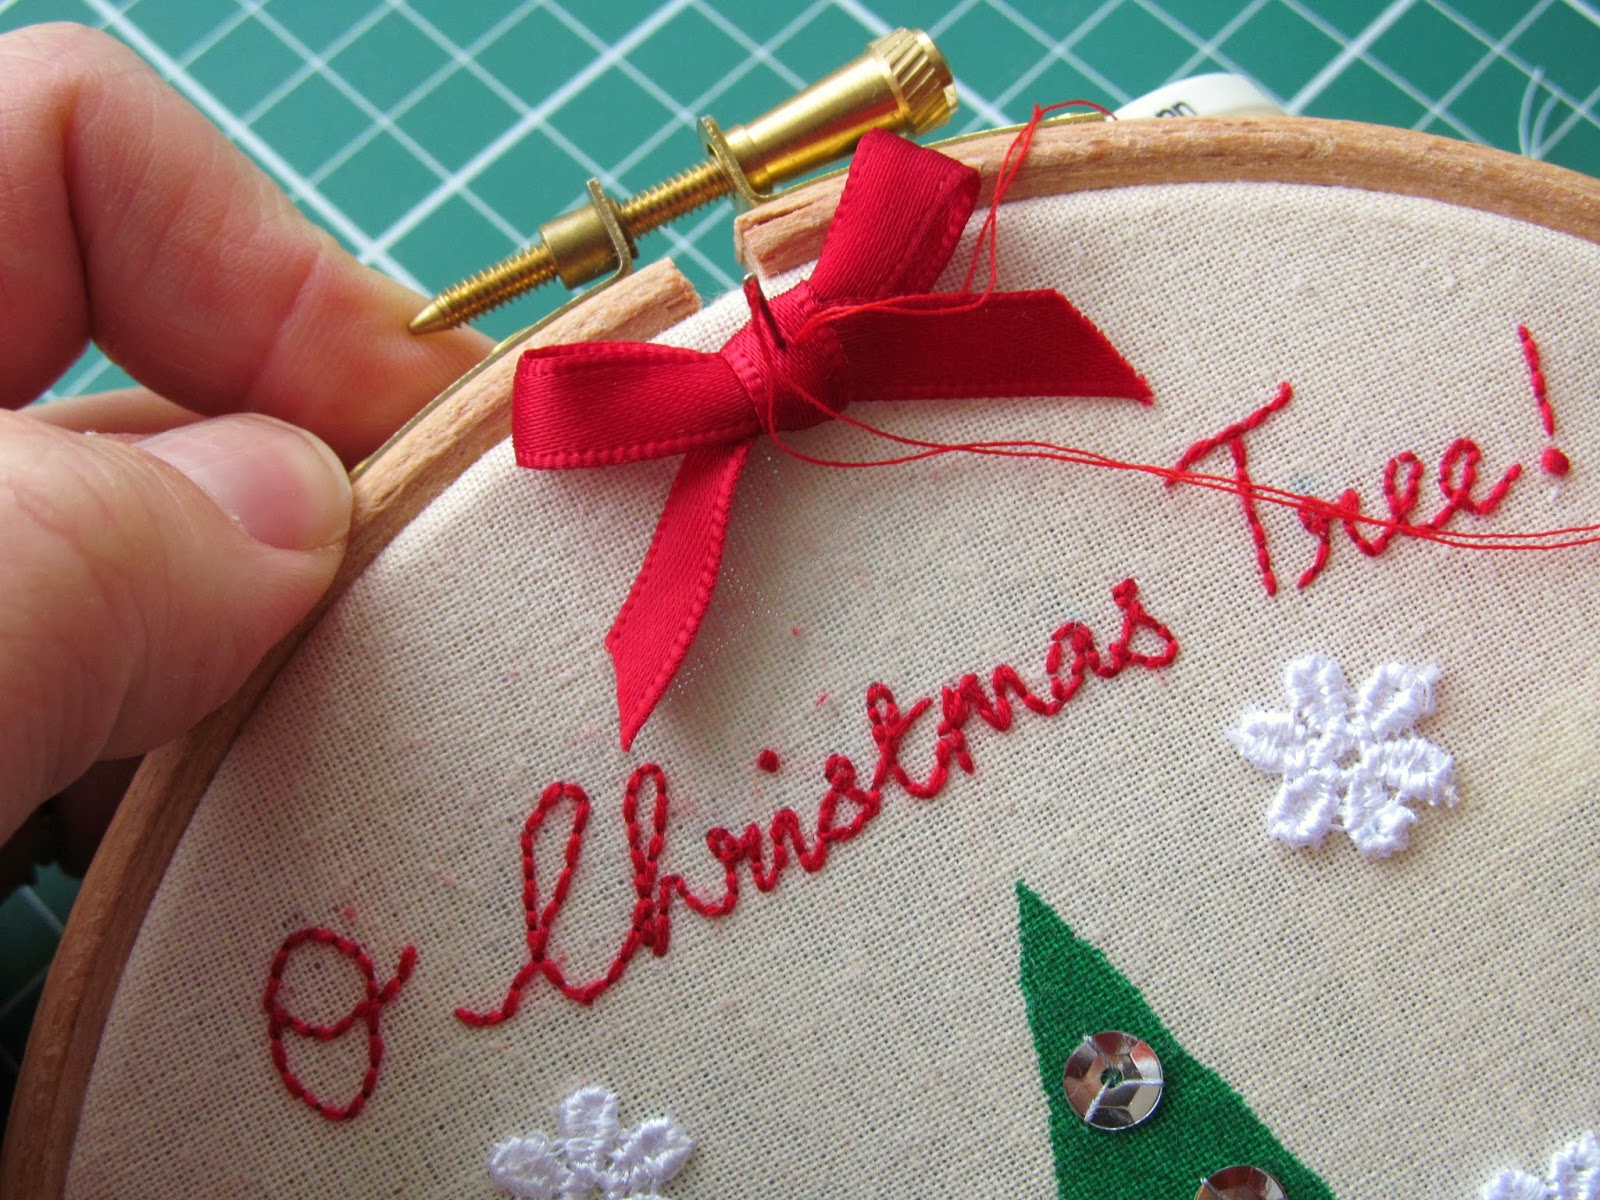 I Then Finished My Embroidery Hoop With A Small Bow Made Of Red Satin  Ribbon And